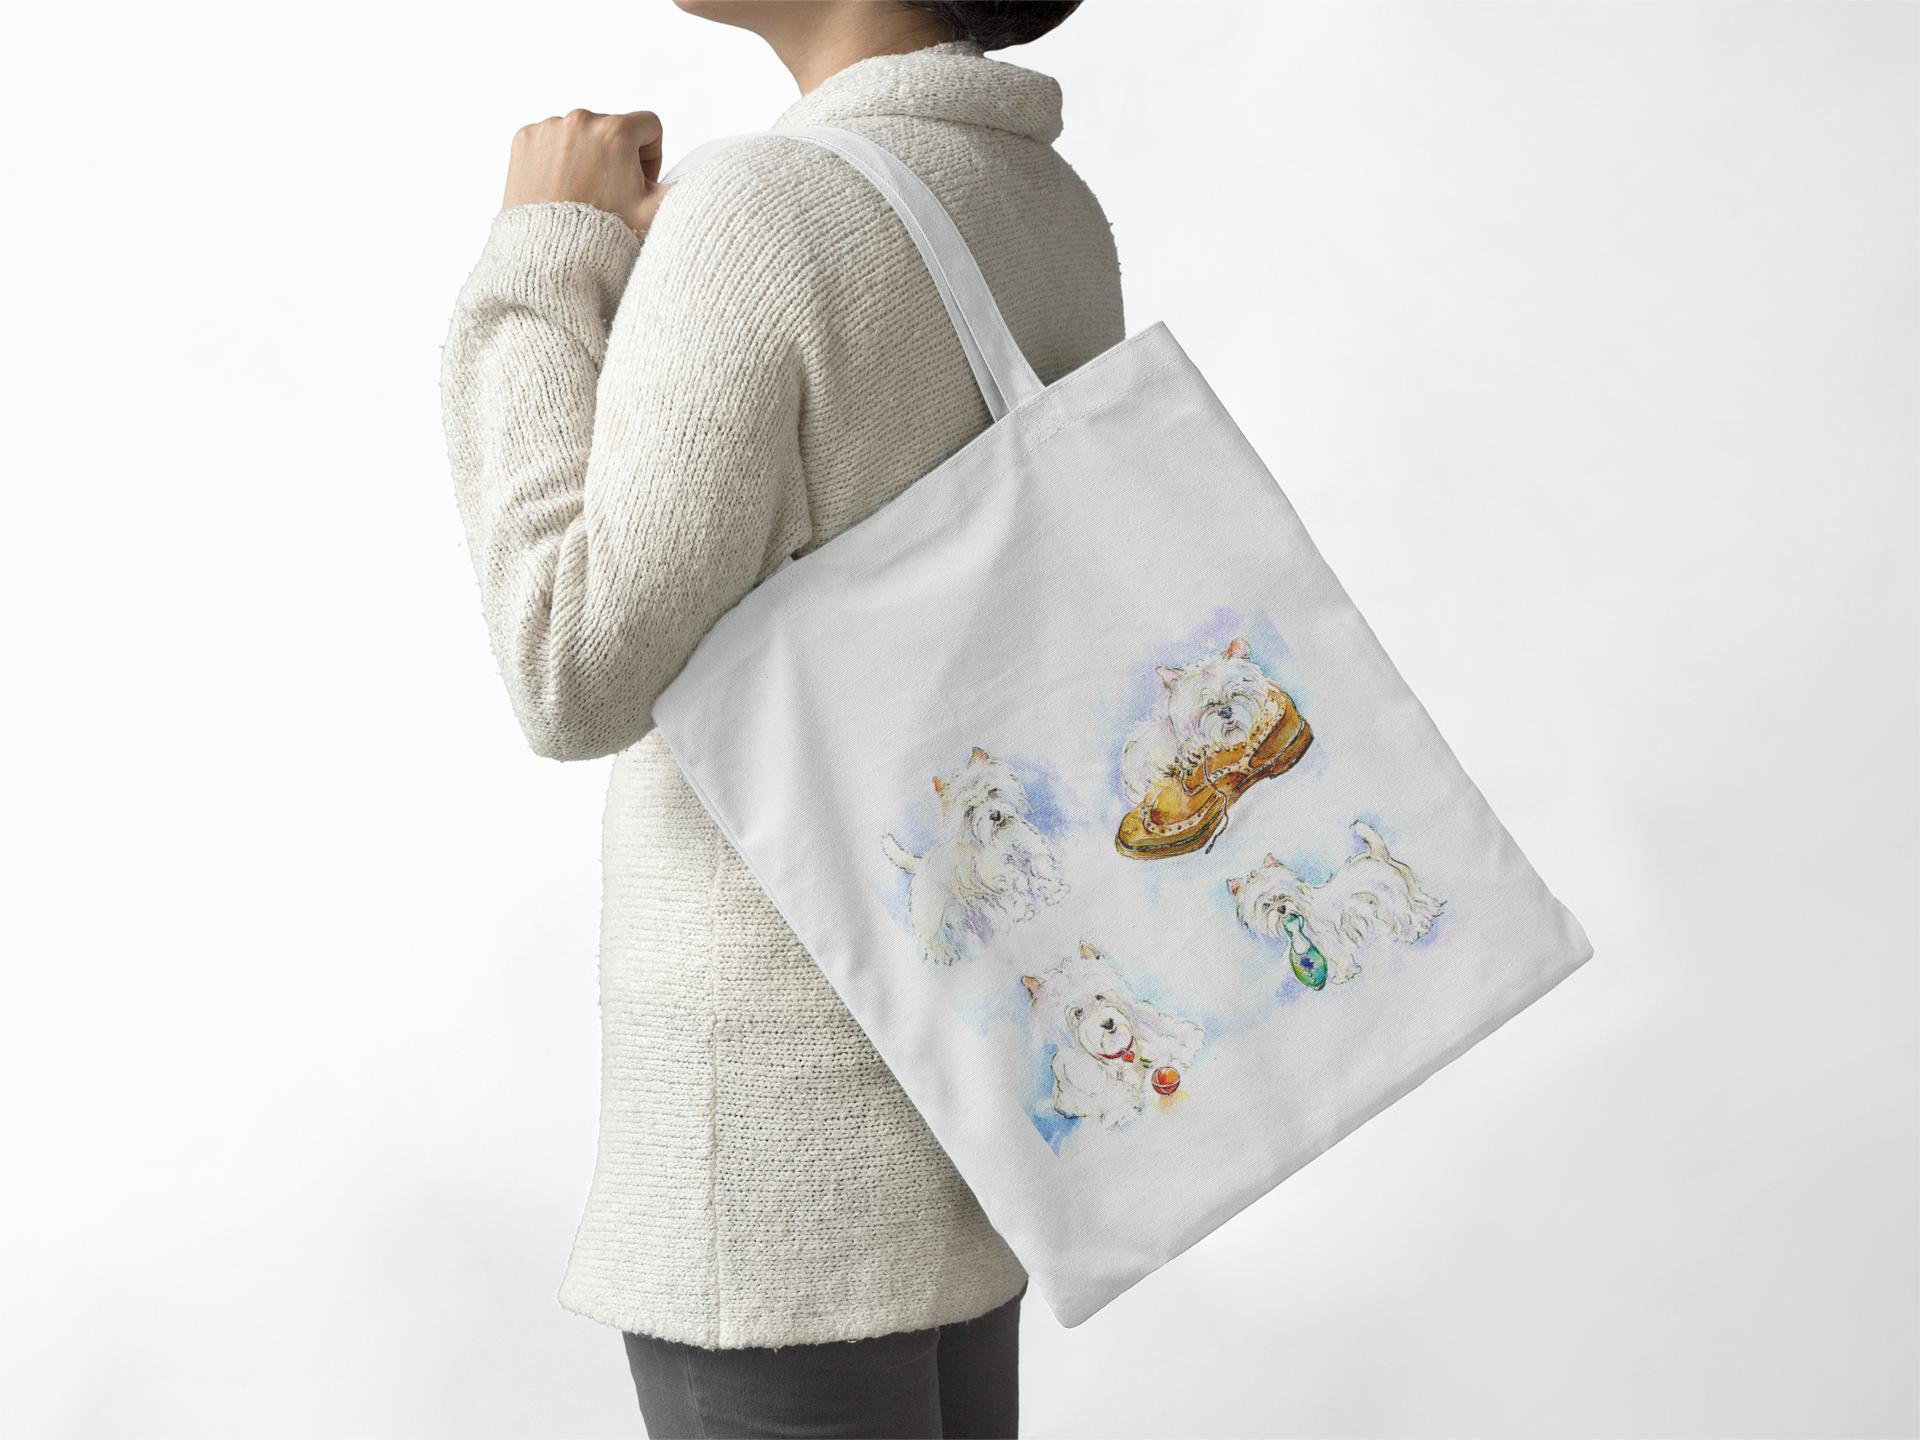 Dog -  White Scottie - Tote Bag